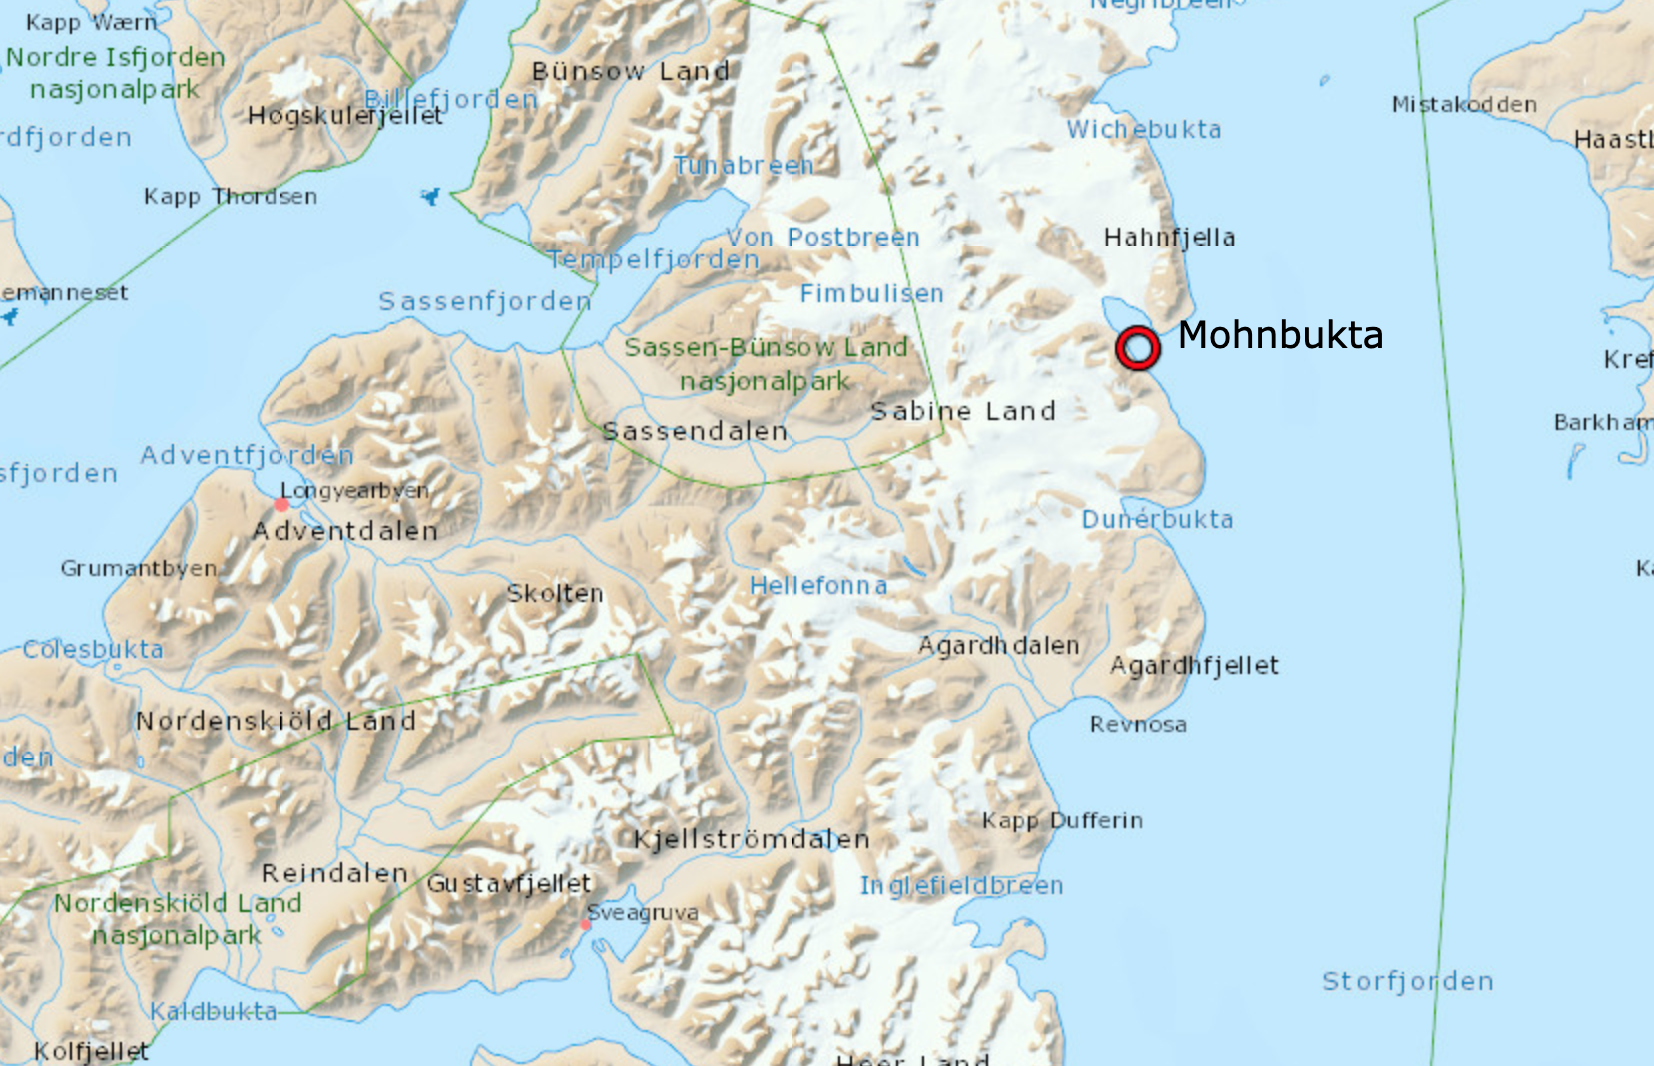 POLAR BEAR INJURES MAN IN EAST SVALBARD: Bear shot and killed after attack on two-person excursion to Mohnbukta